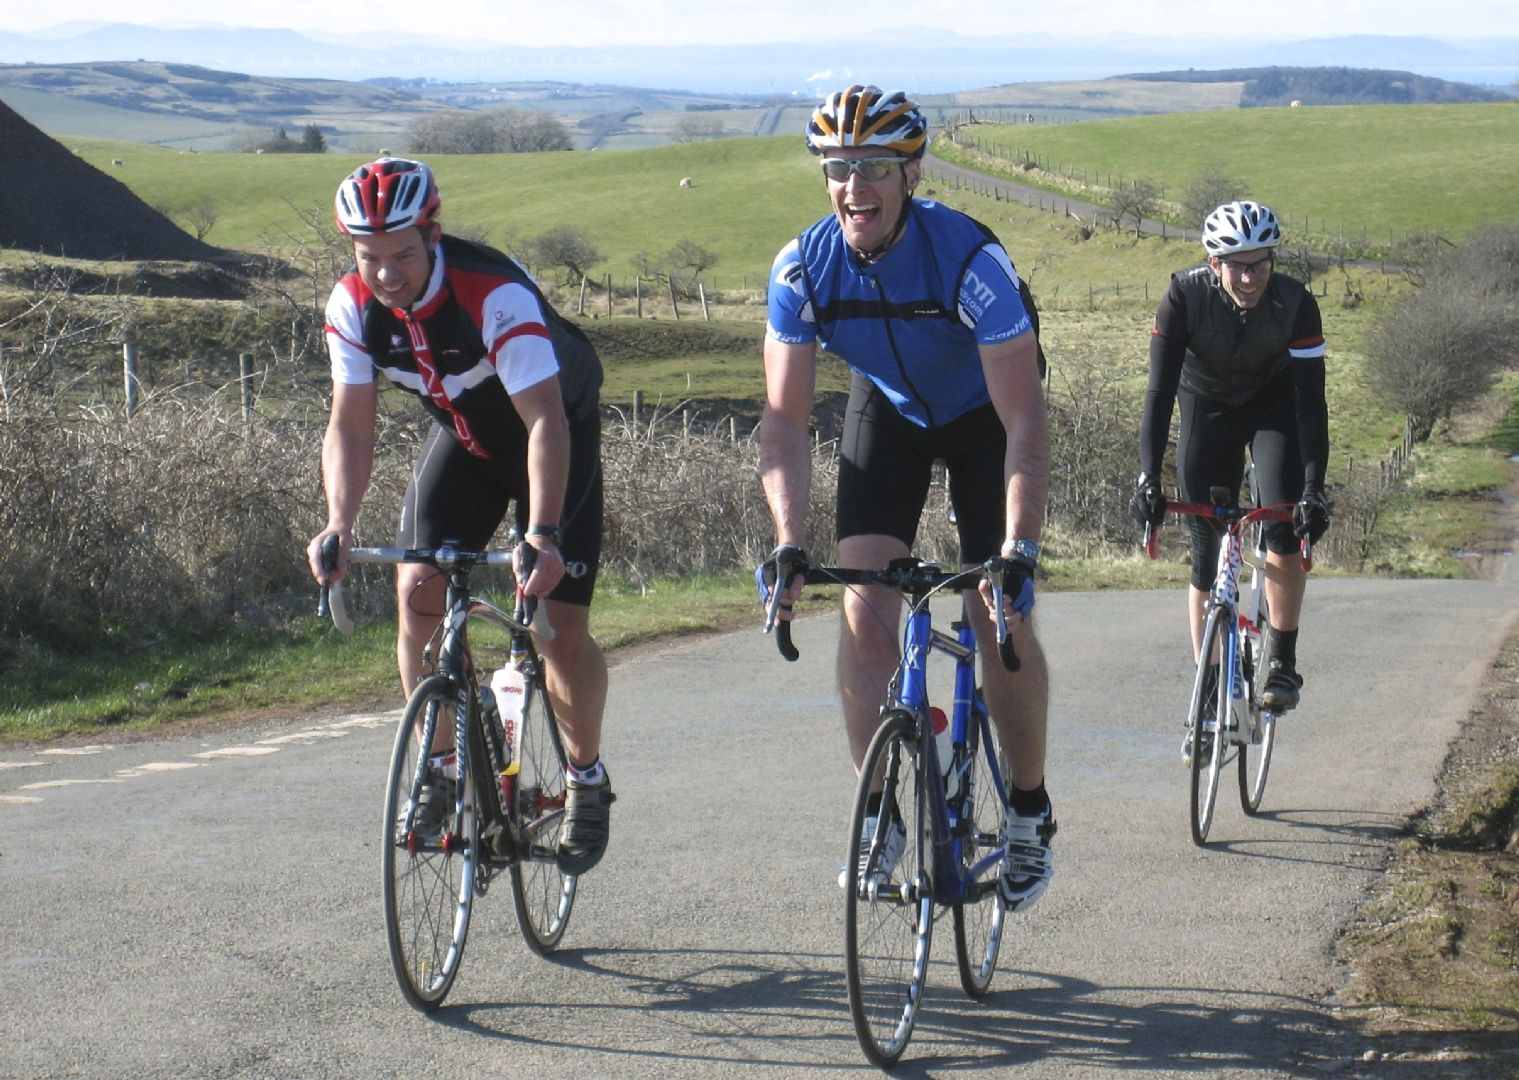 _Staff.178.9755.jpg - UK - Lake District Introductory - Guided Road Cycling Weekend - Road Cycling